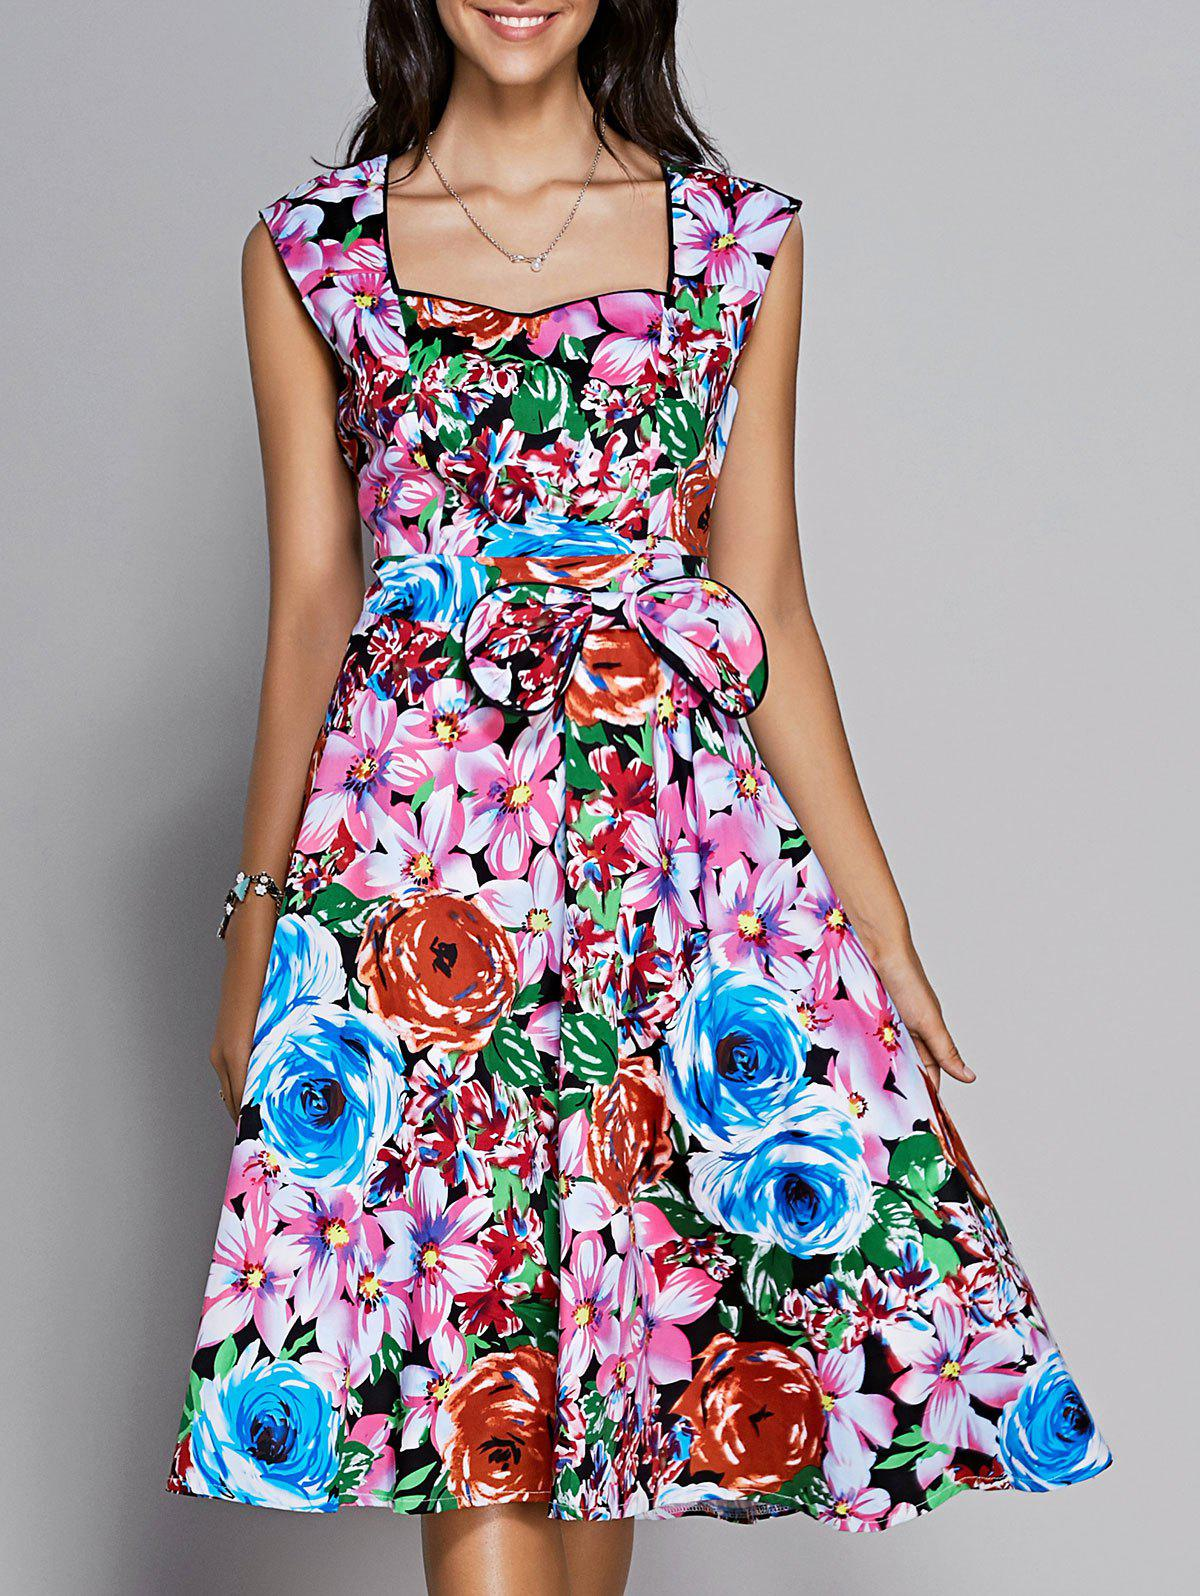 Retro Women's Colorized Floral Sleeveless Sweetheart Neck Dress - COLORMIX XL